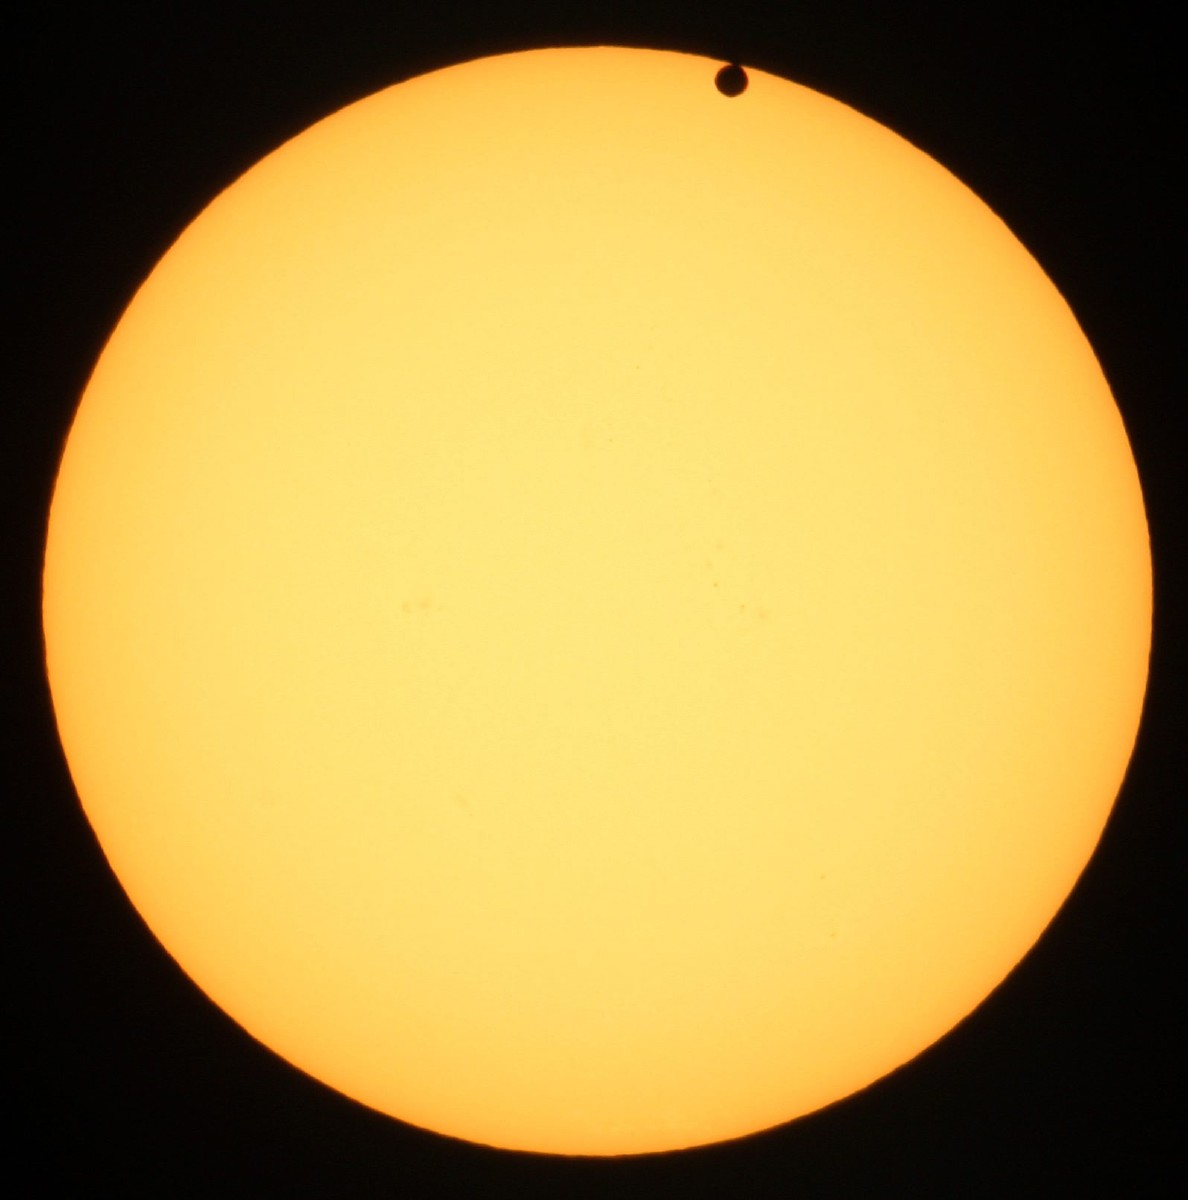 Venus moves in front of the sun as seen from the University of Western Ontario in London, Ontario on Tuesday, June 5, 2012. The rare event occurs when the planet Venus moves in front of the sun. The next time this will occur is in 105 years in 2117. (AP Photo/The Canadian Press, Dave Chidley)